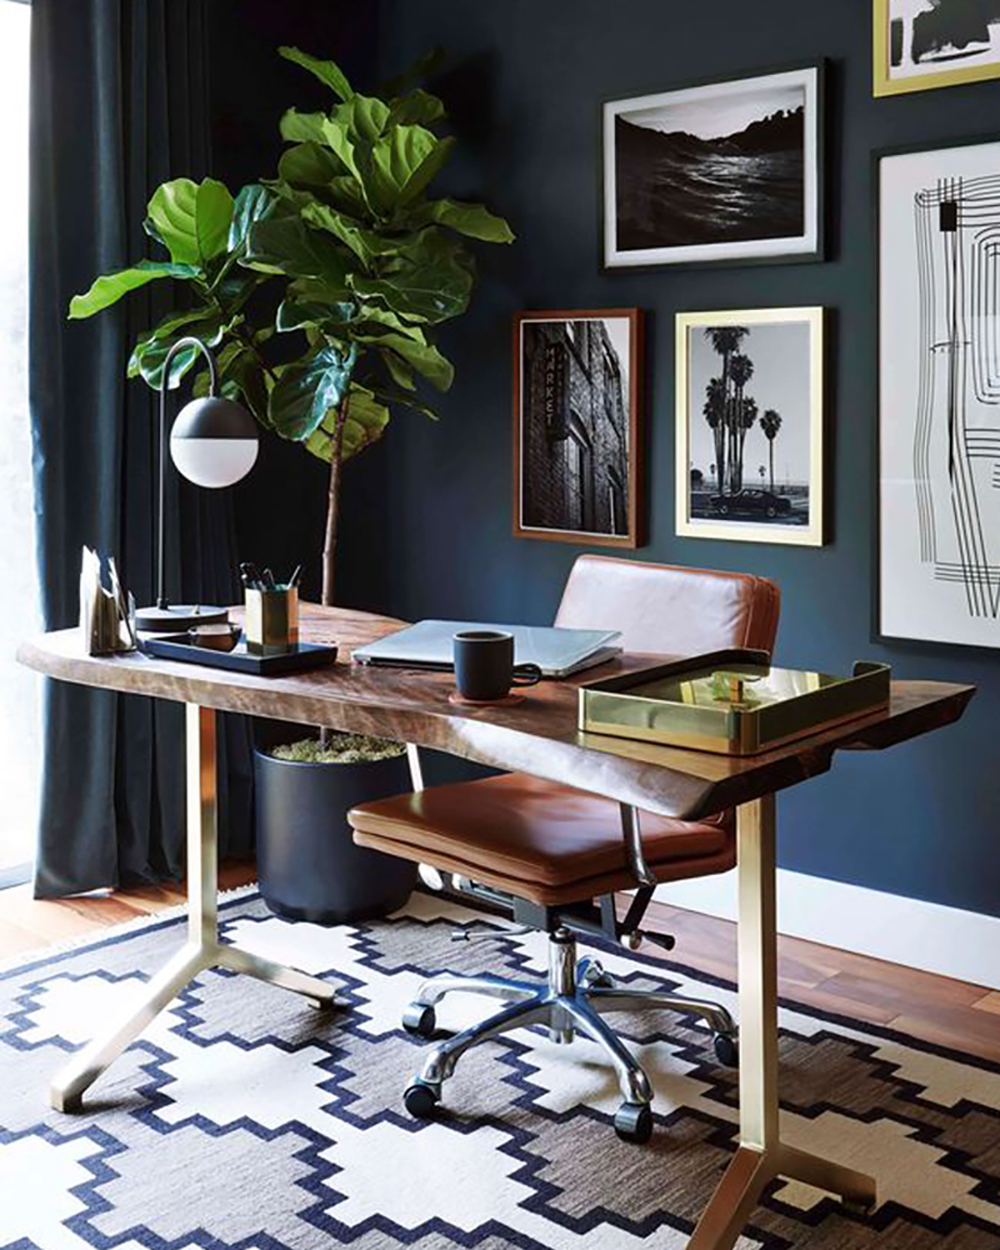 Modern and eclectic office with blue wall - 35 ideas for blue wall colour in home decoration | Aliz's Wonderland